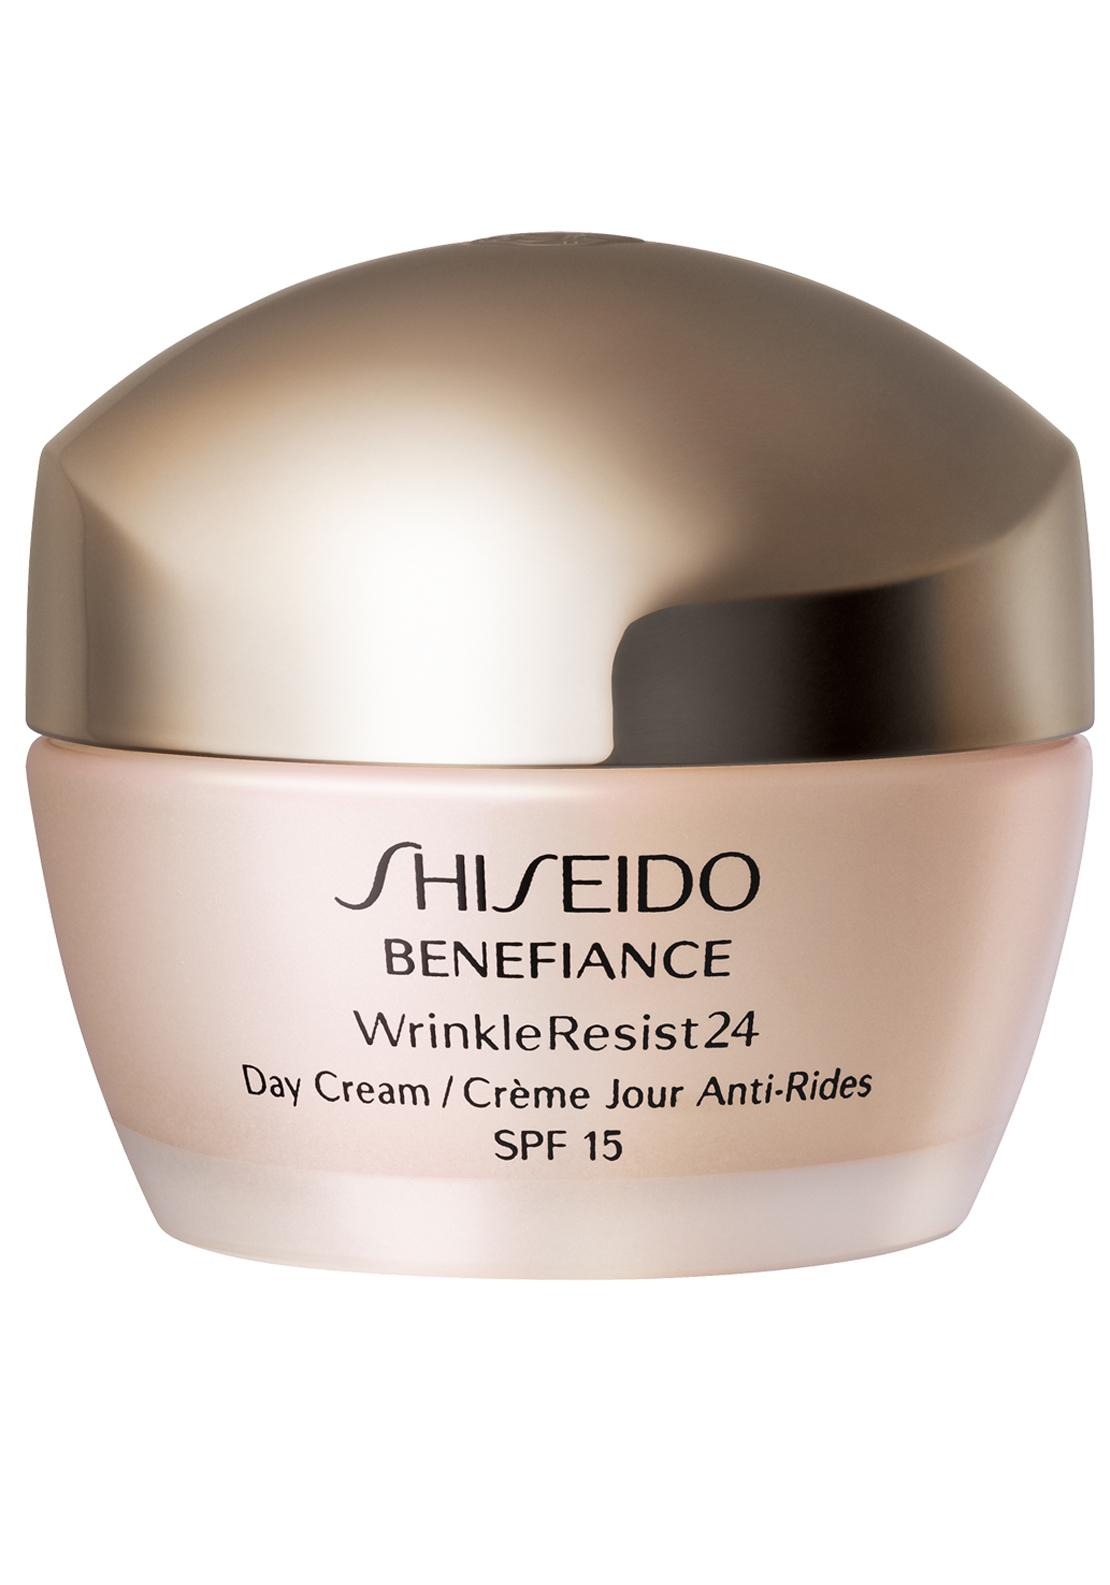 Shiseido Benefiance Wrinkle Resist 24 Day Cream SPF 15  (50ml)